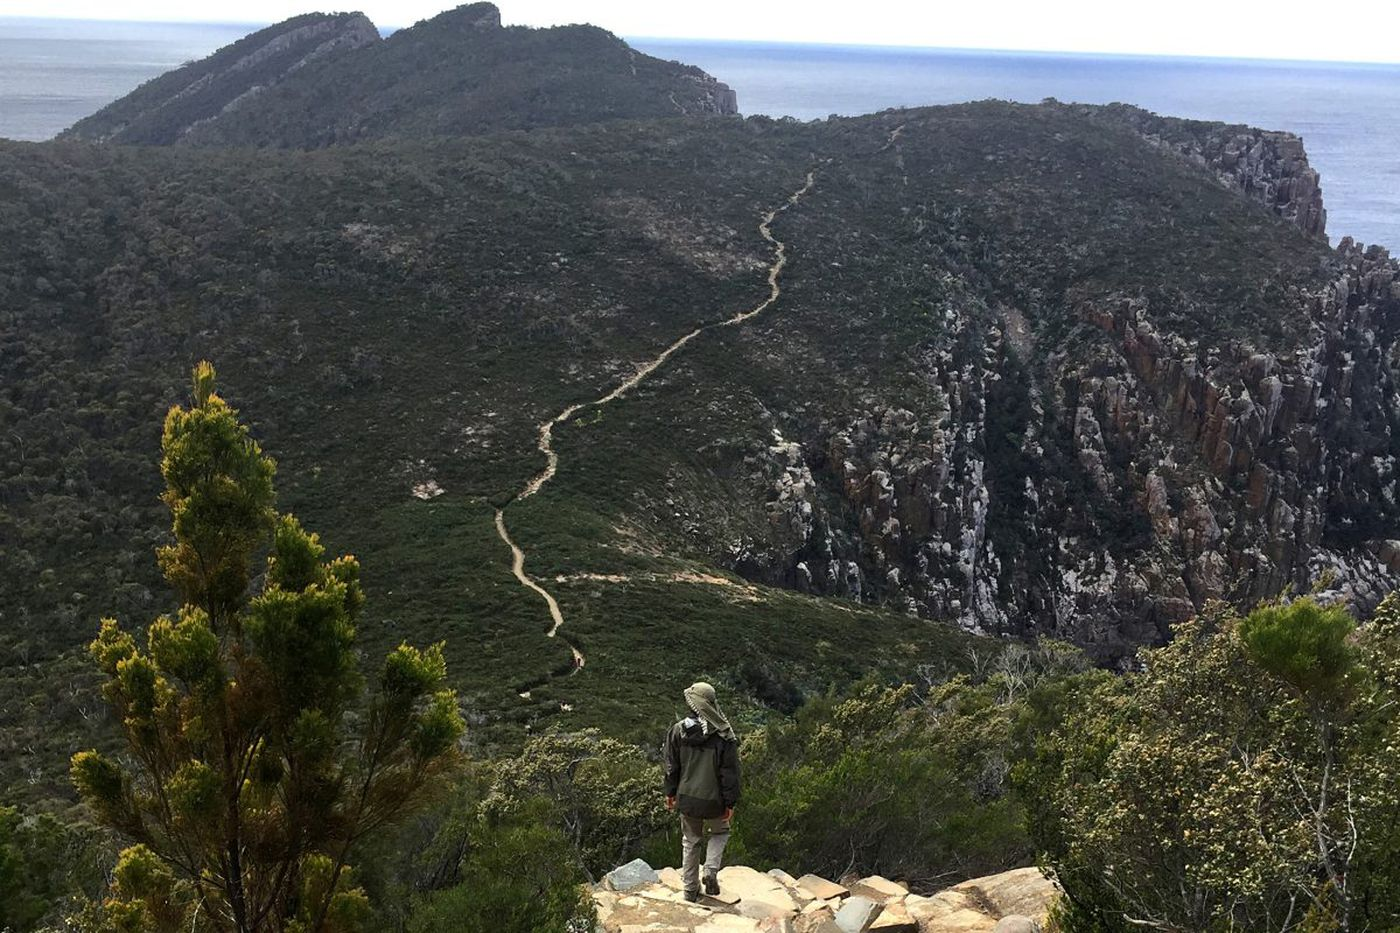 Tasmania's Three Capes trail is spectacular, but at a price